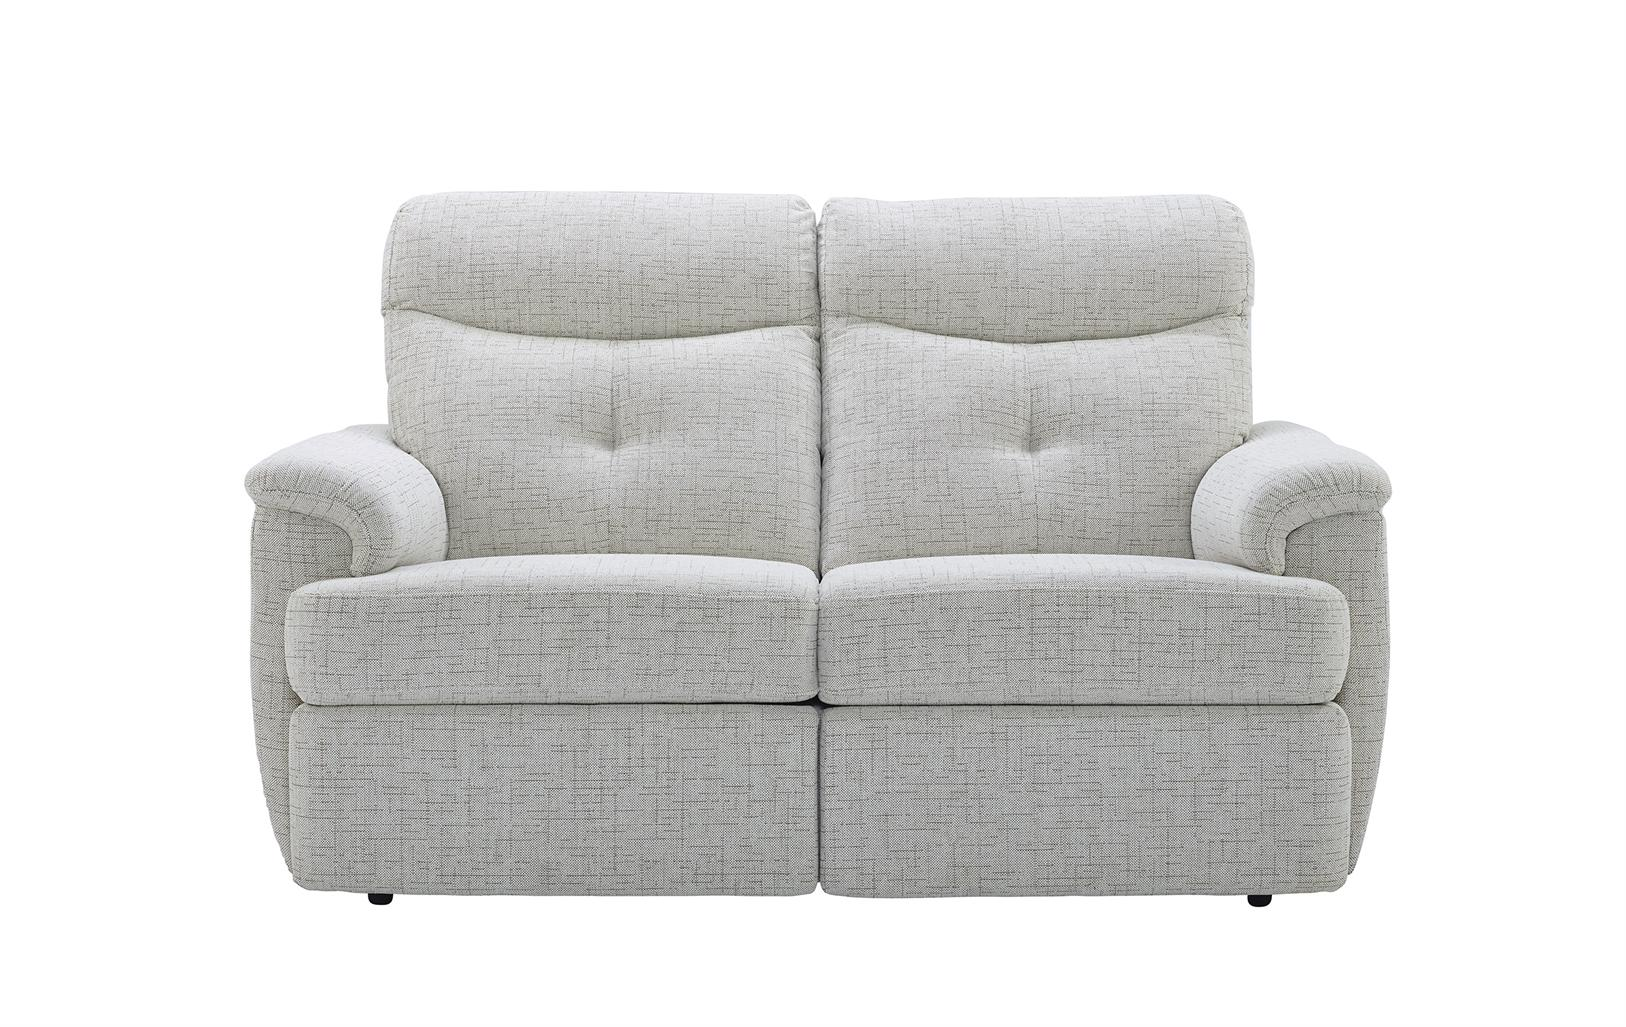 GPlan - Atlanta Two Seater Sofa